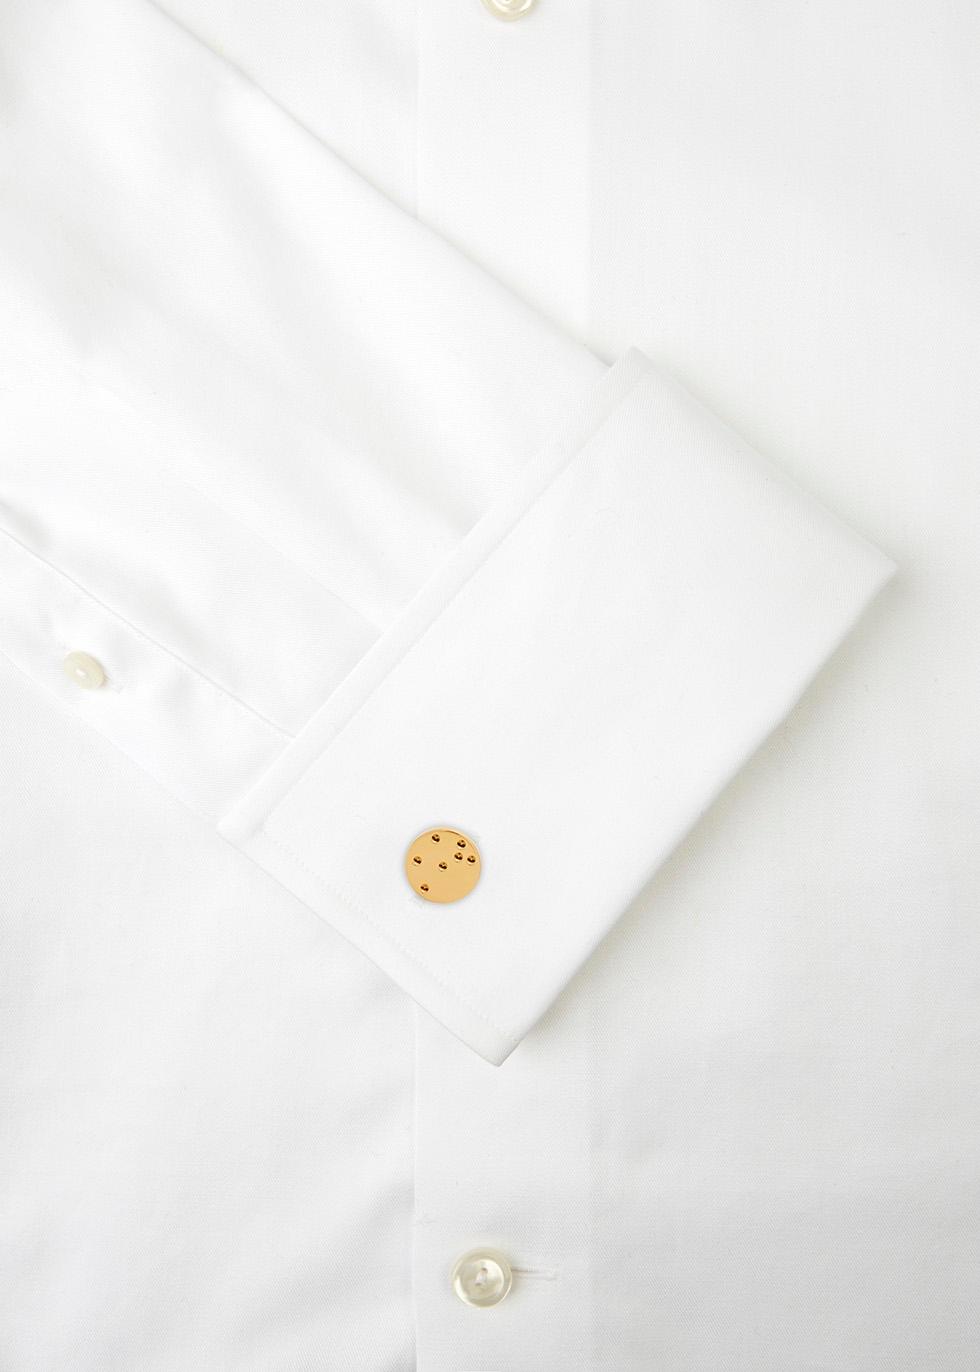 Cecil gold tone cufflinks - Alice Made This